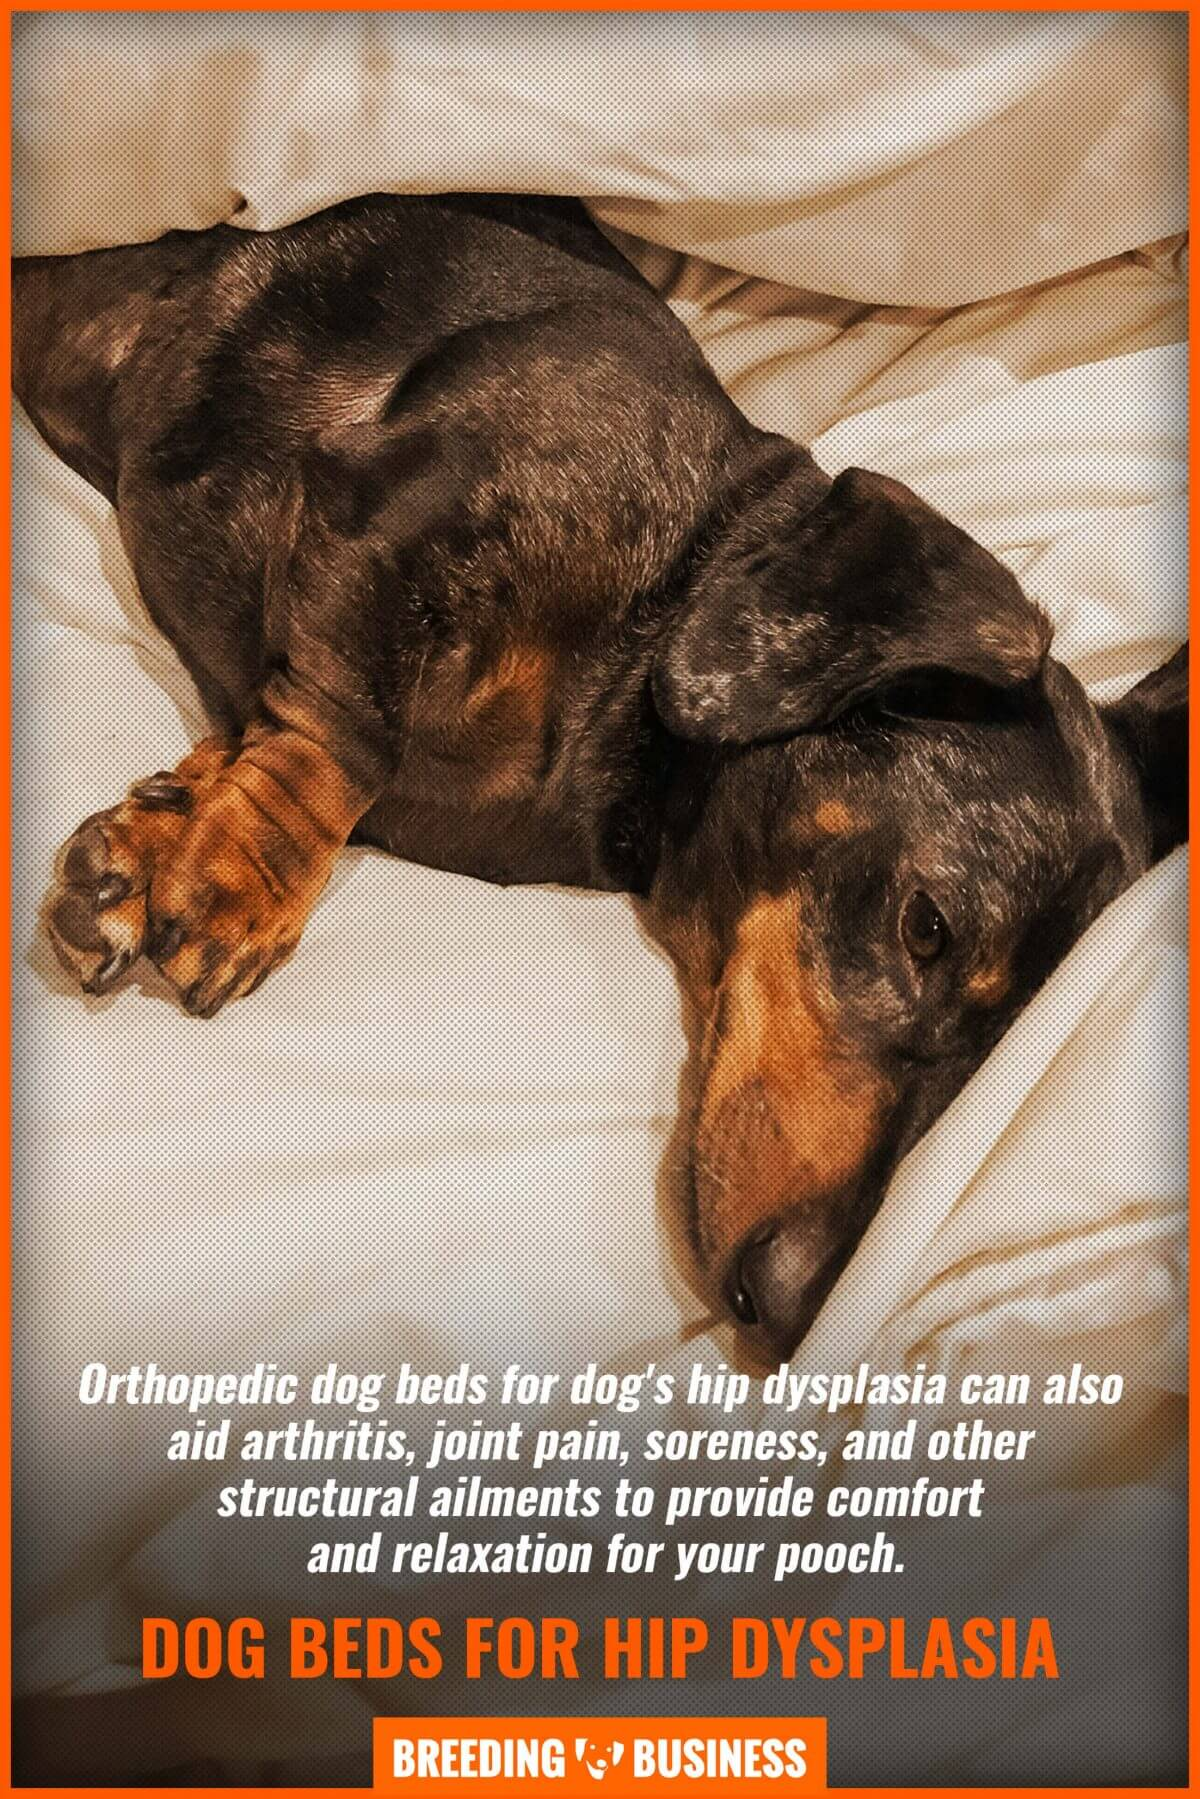 Orthopaedic dog beds help a lot with soreness.